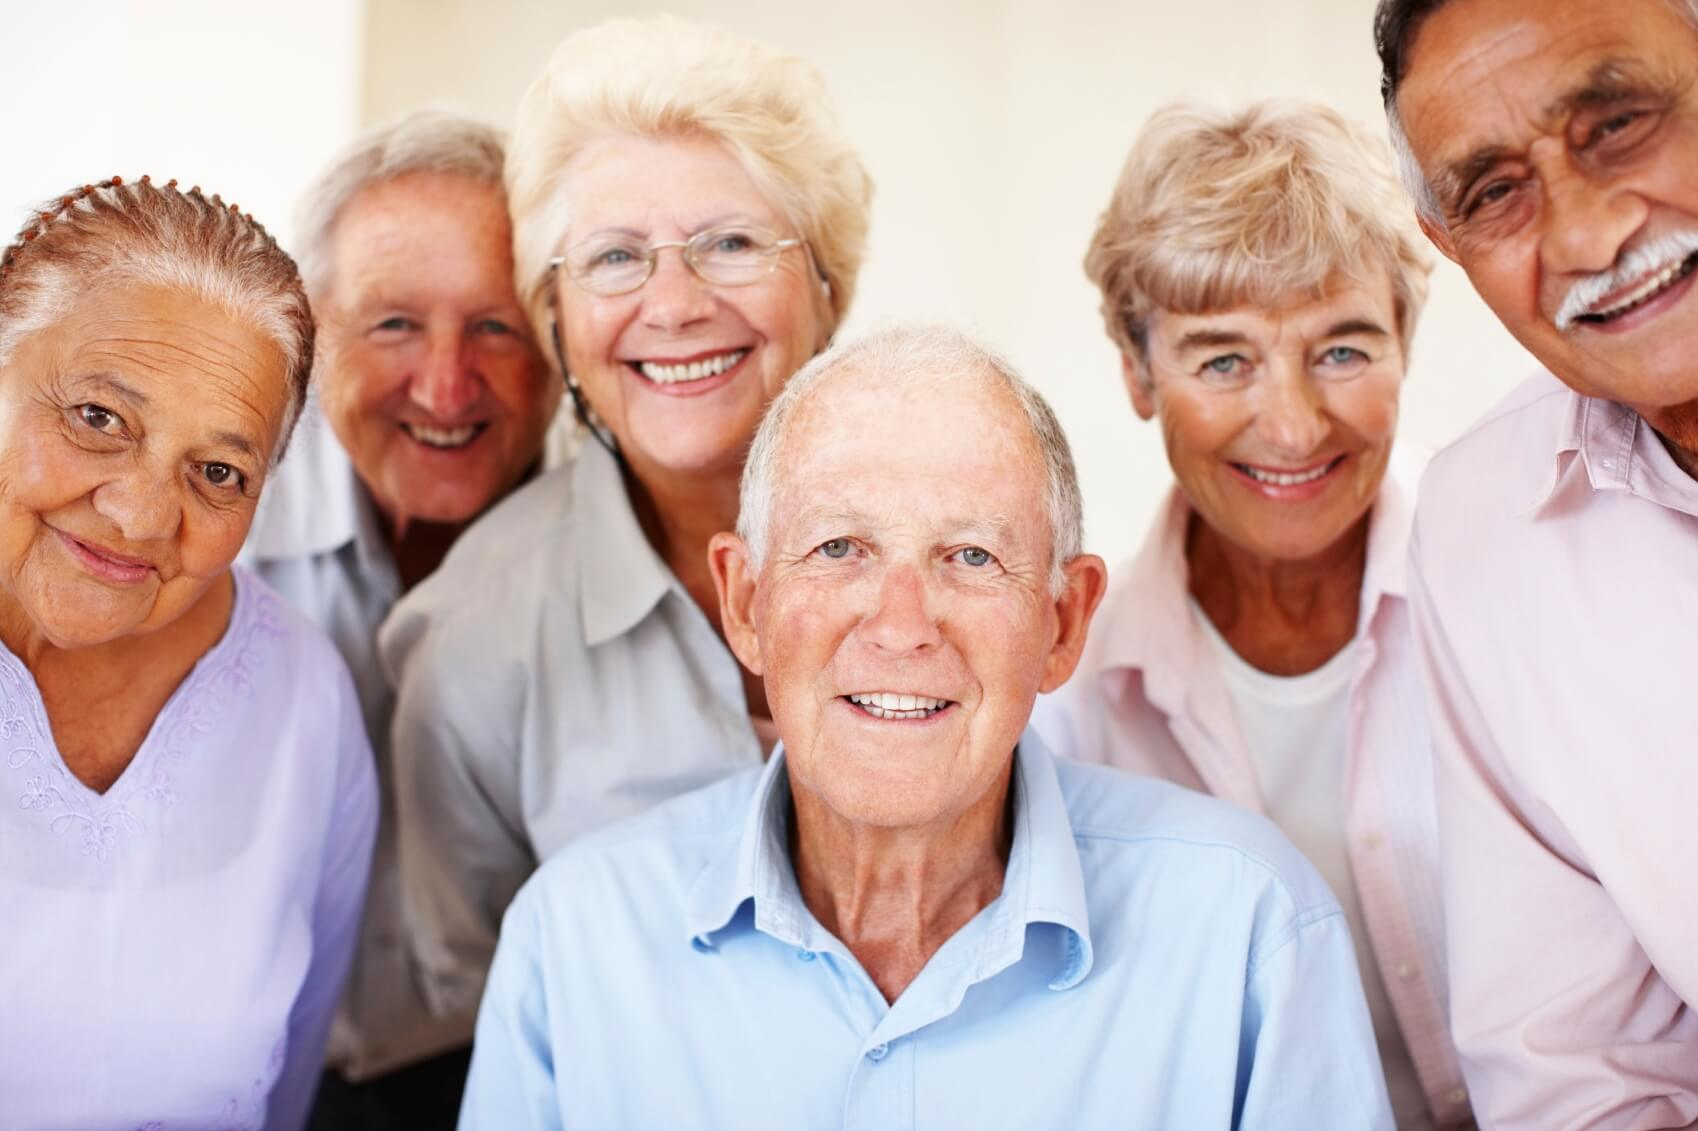 How to keep the elderly active and happy?